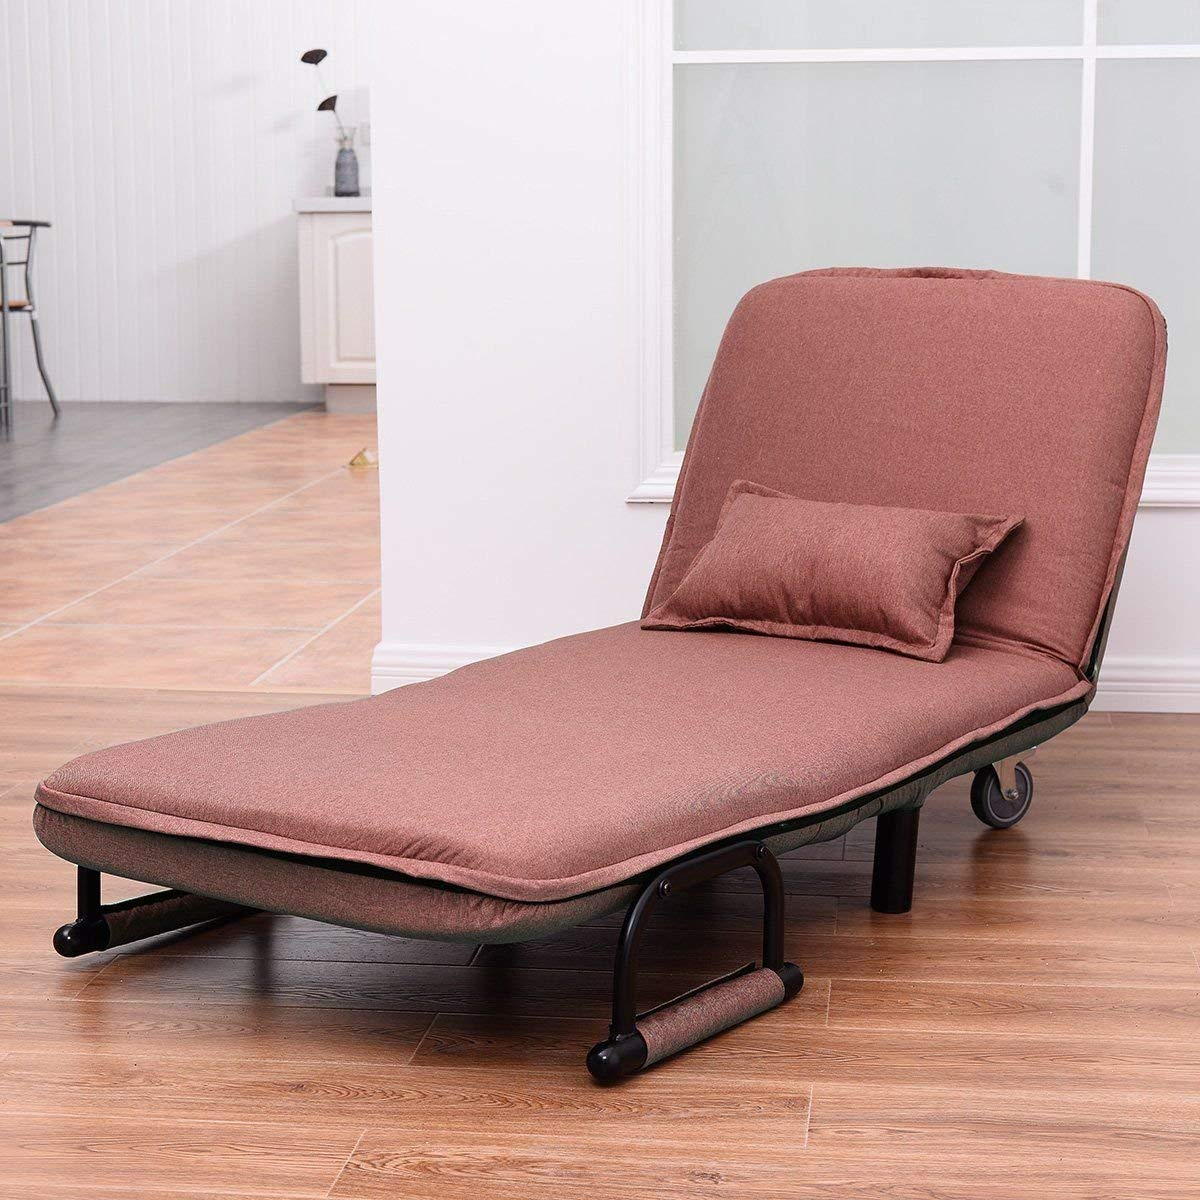 Cheap Convertible Sofa Chair Bed Find Convertible Sofa Chair Bed Deals On Line At Alibaba Com